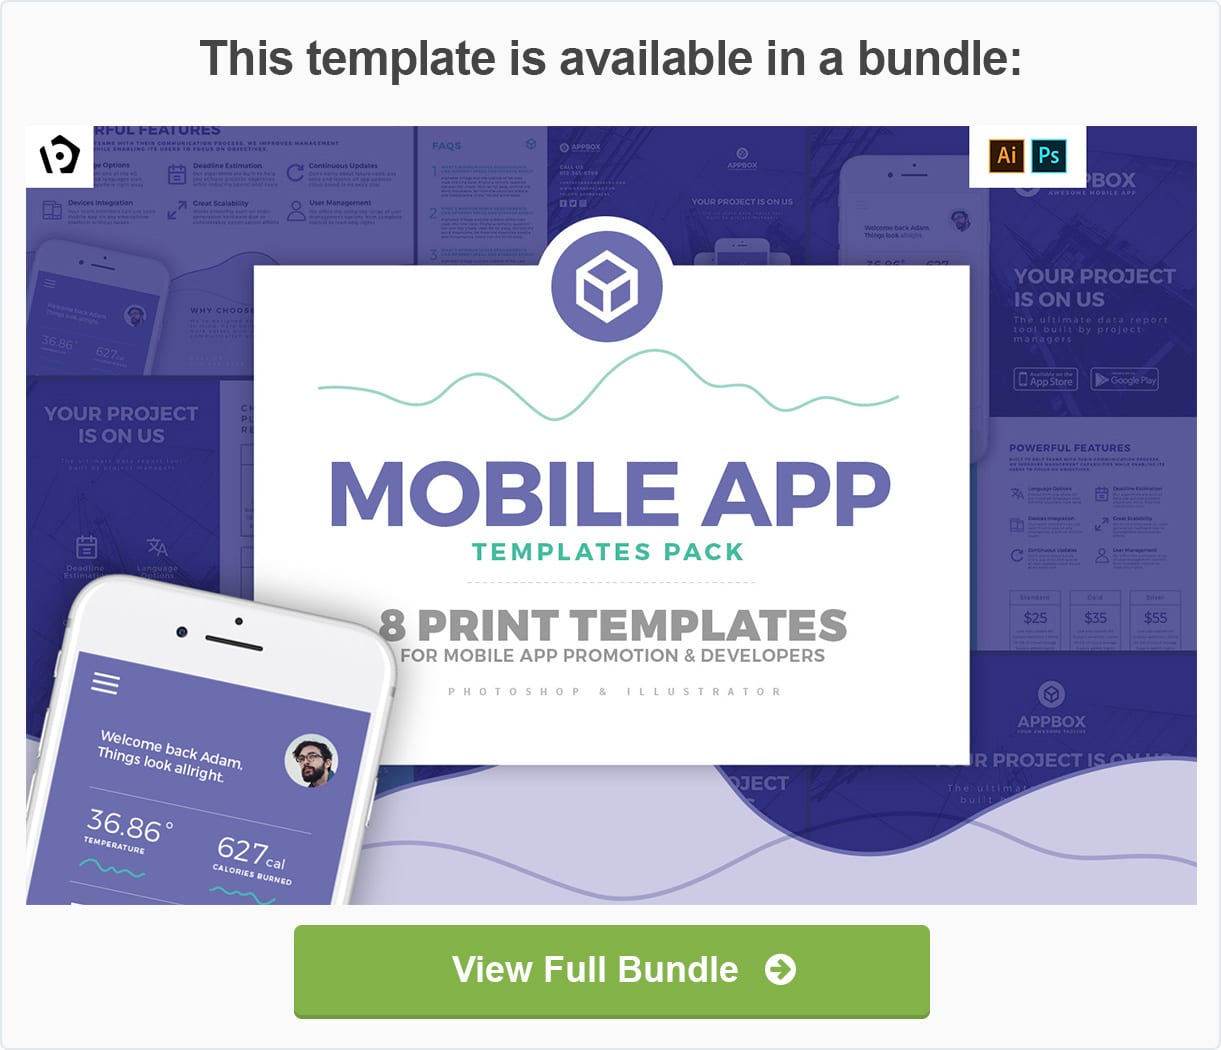 Mobile App Templates Pack